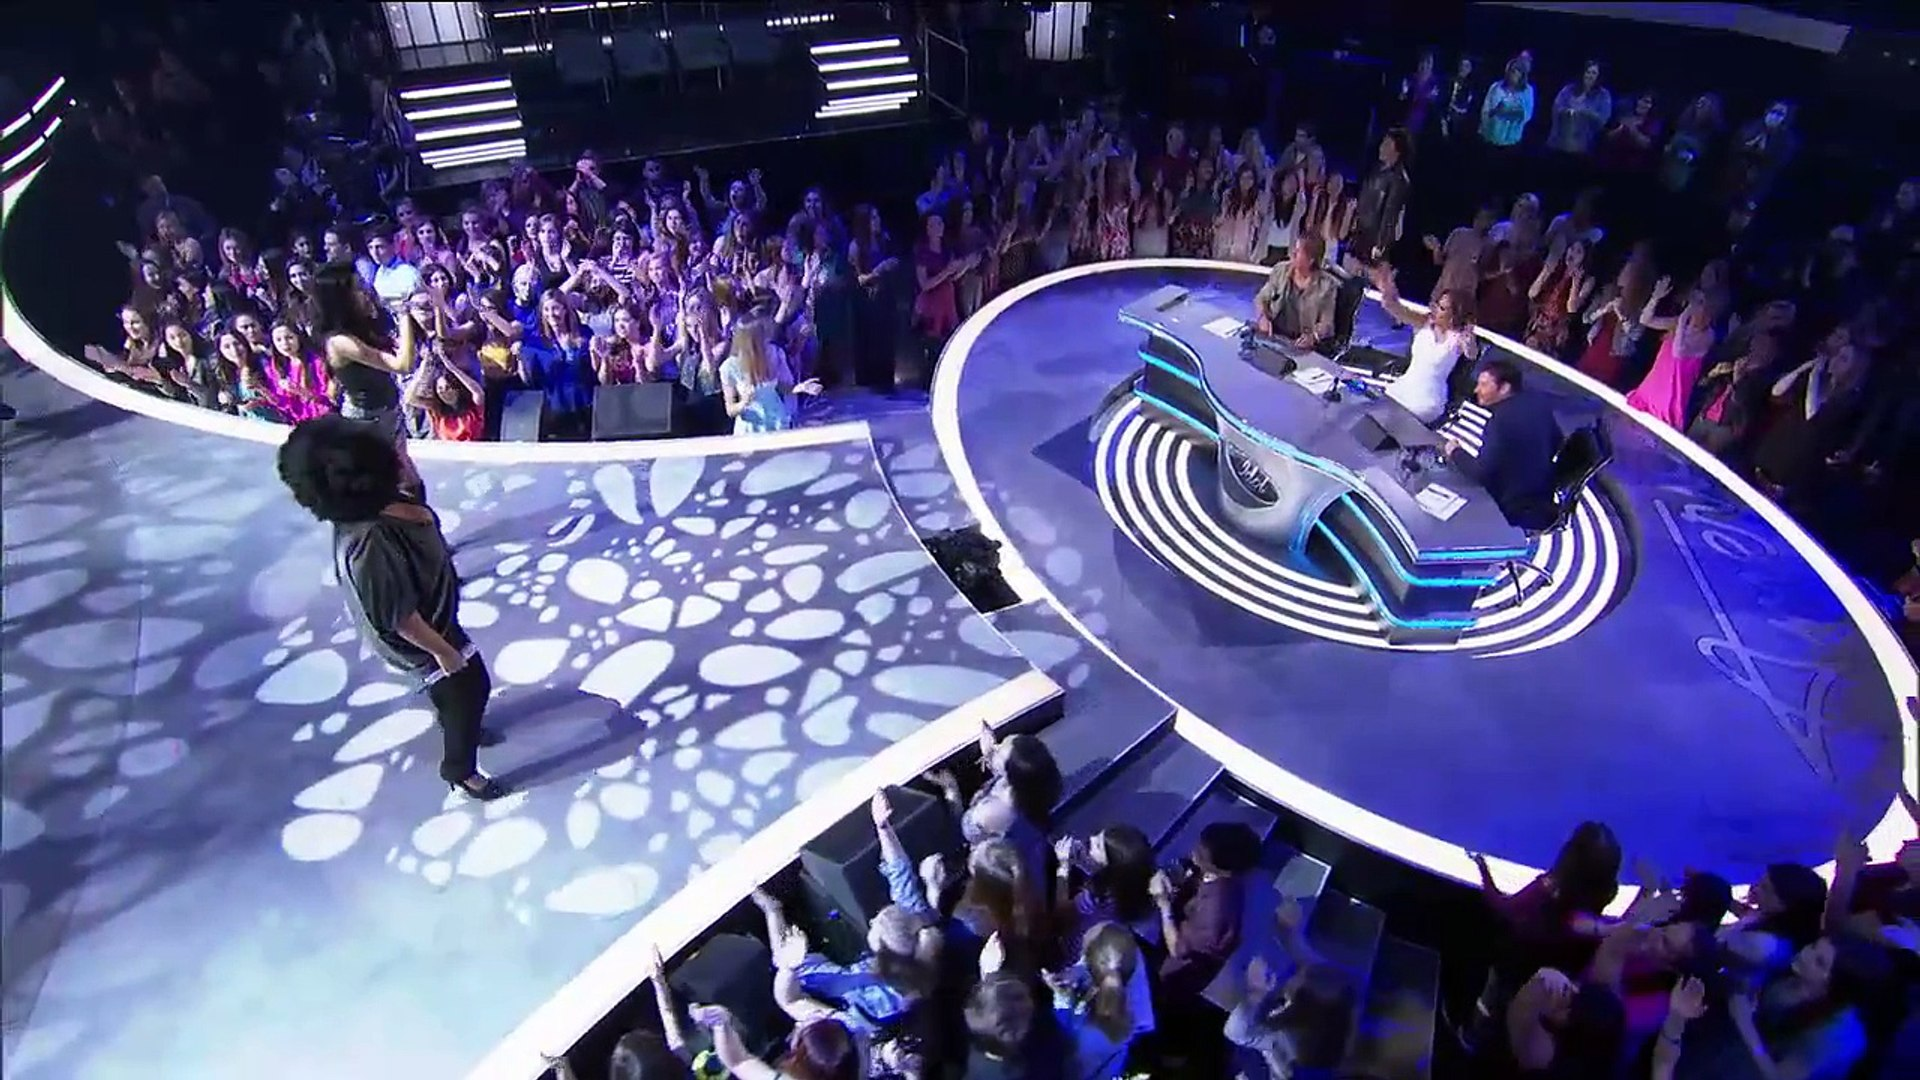 Demi Lovato and The Top 10 Perform Confident - AMERICAN IDOL | AMERICAN IDOL season - 15 | AMERICAN